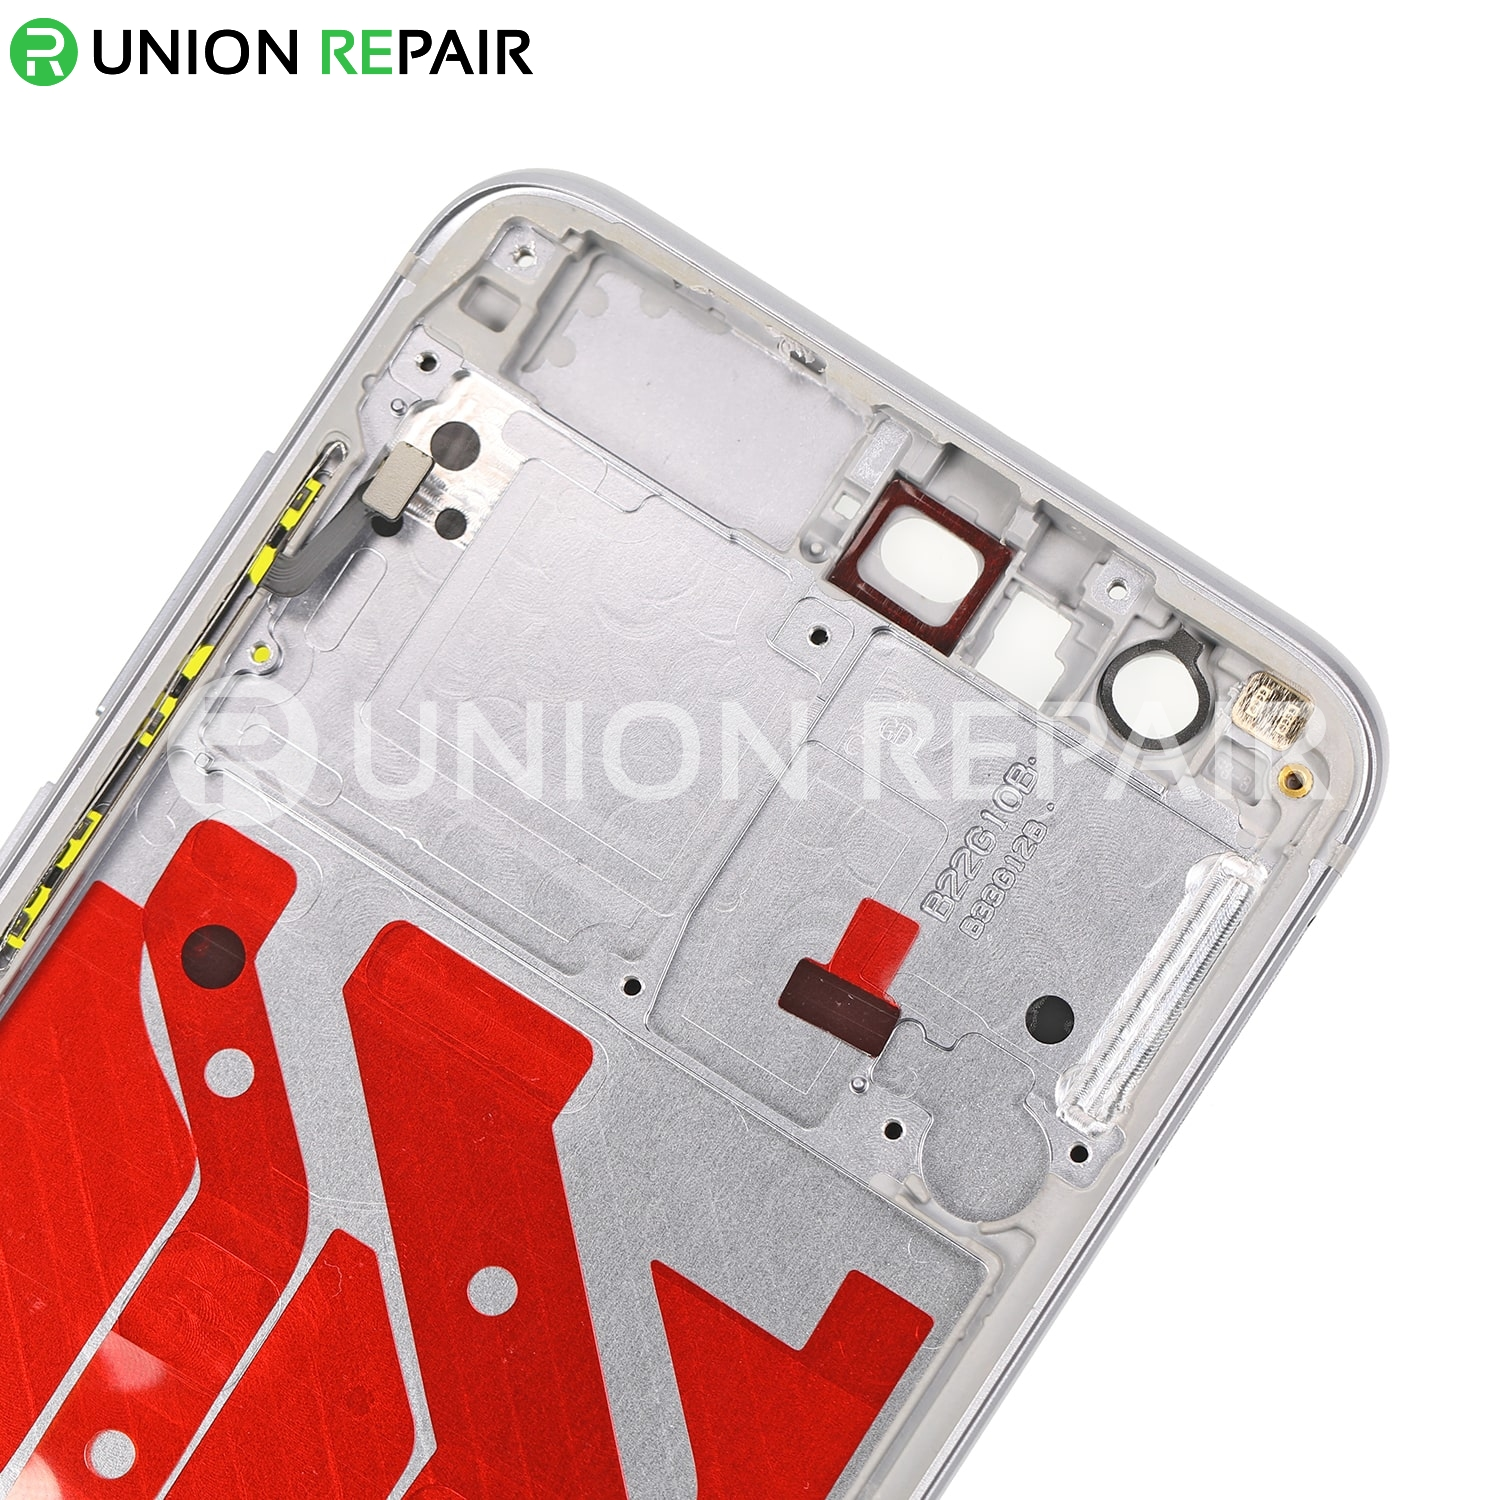 Replacement for Huawei Honor 9 Rear Housing - Gray